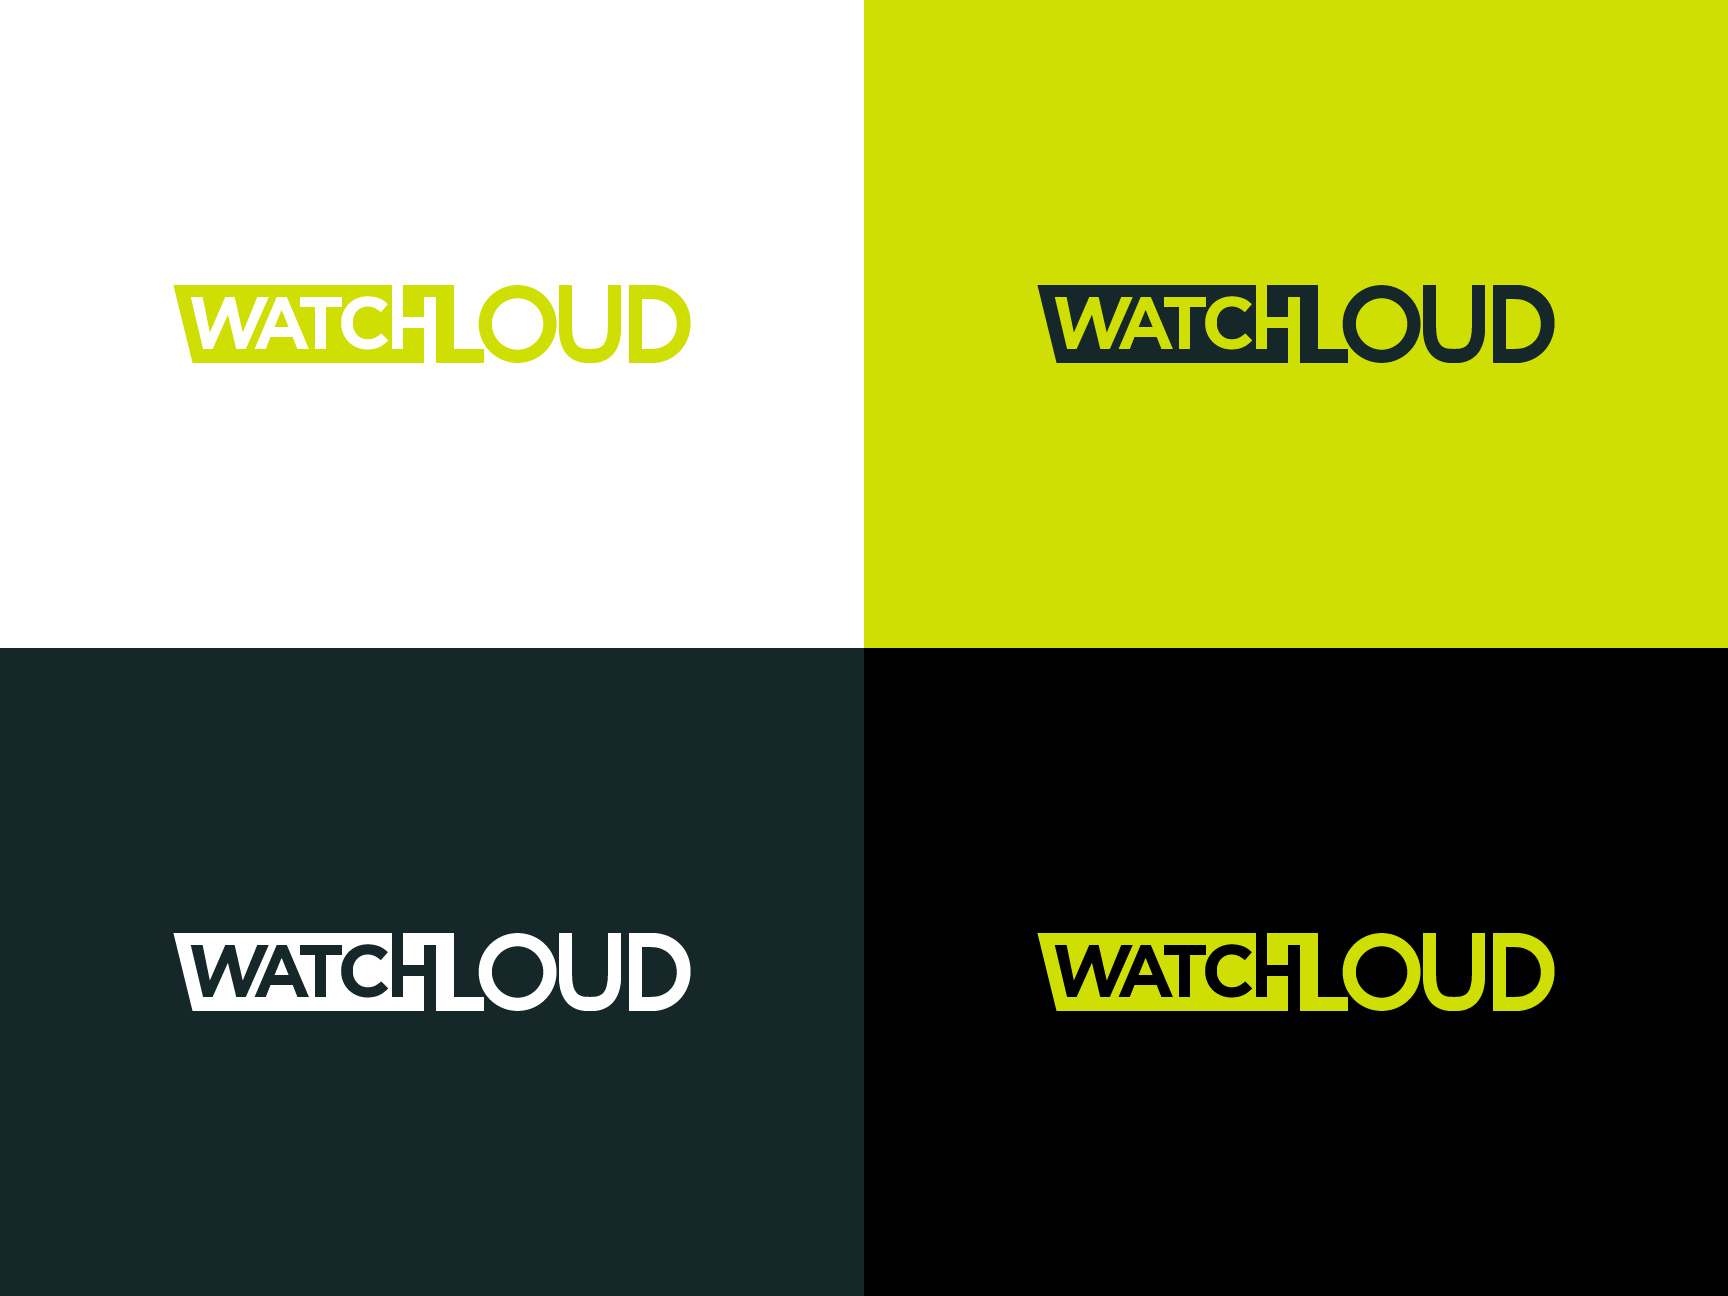 watchloud_logos_r4_01b